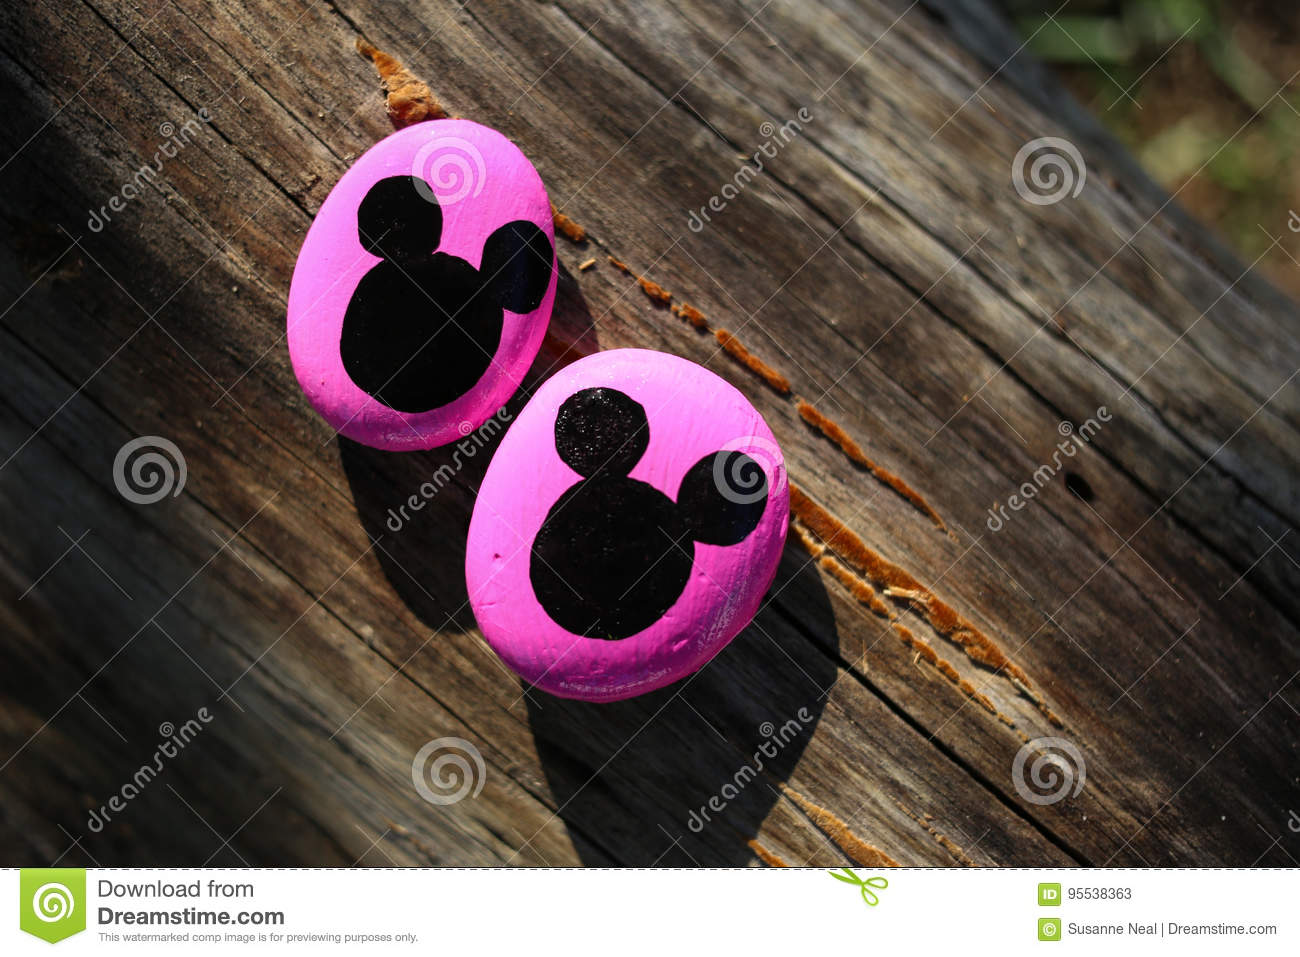 Two Pink Painted Rocks With Black Mickey Mouse Heads Stock